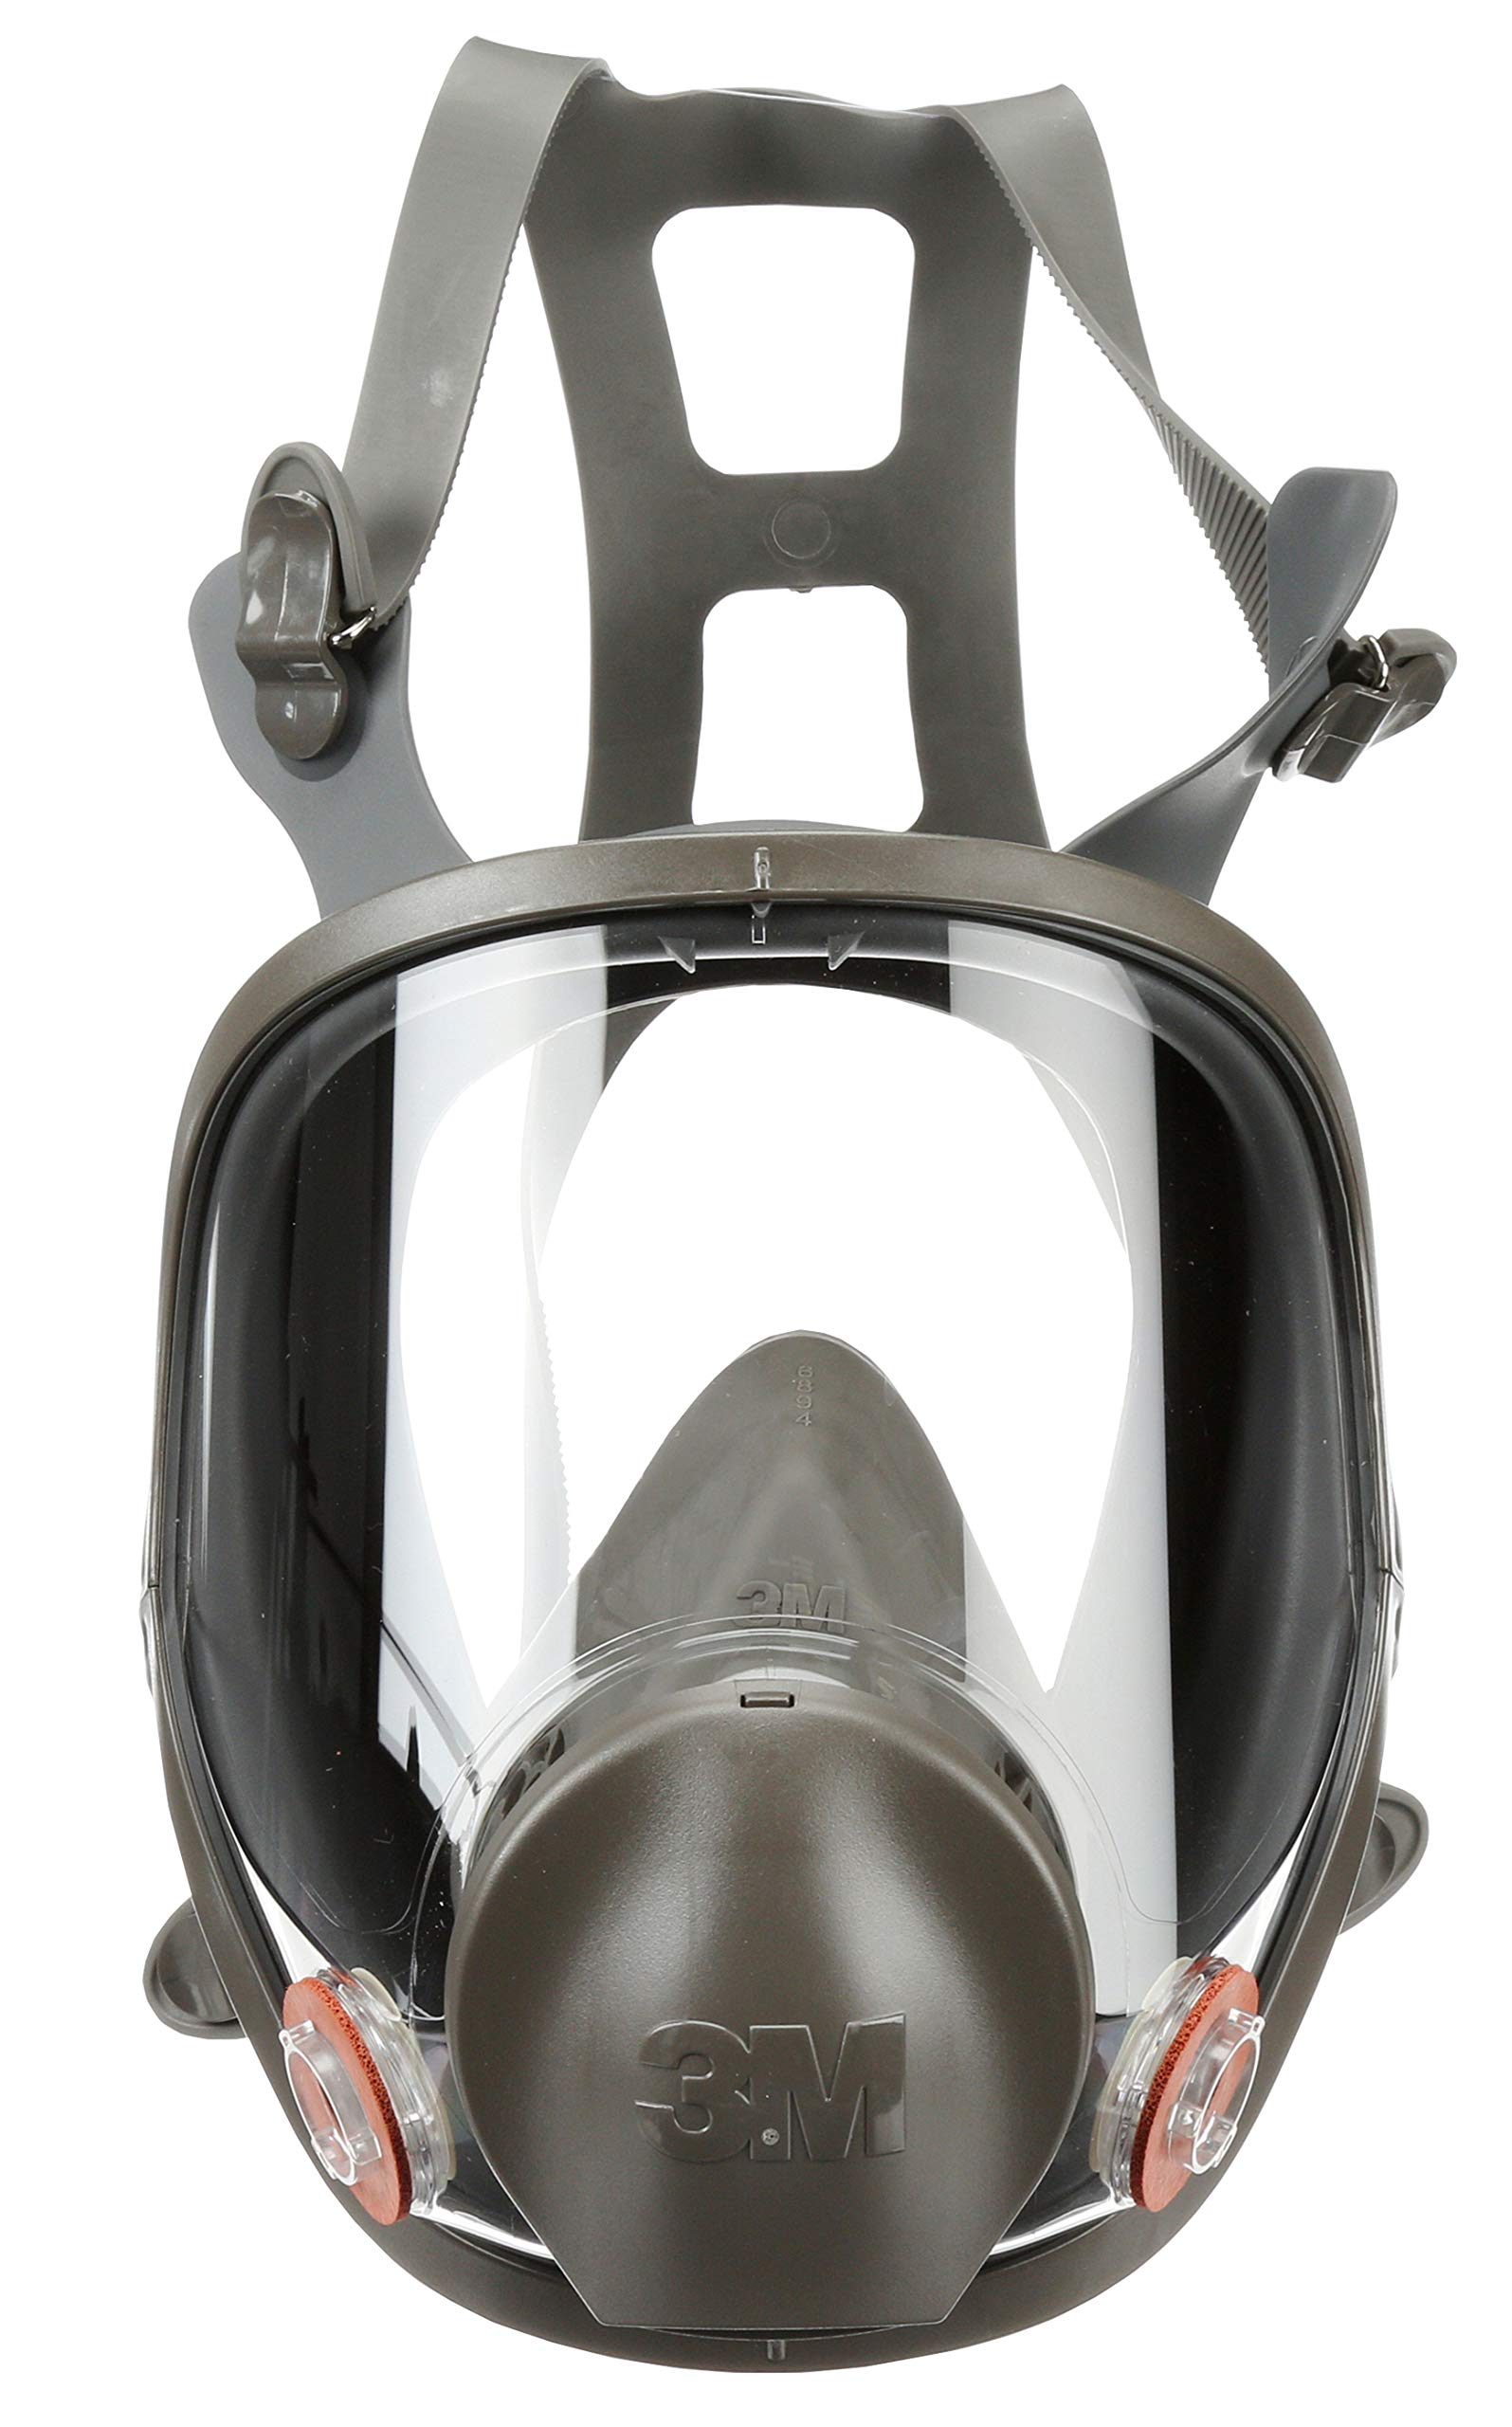 3M Full Facepiece Reusable Respirator 6800, Paint Vapors, Dust, Mold, Chemicals, Medium by 3M Personal Protective Equipment